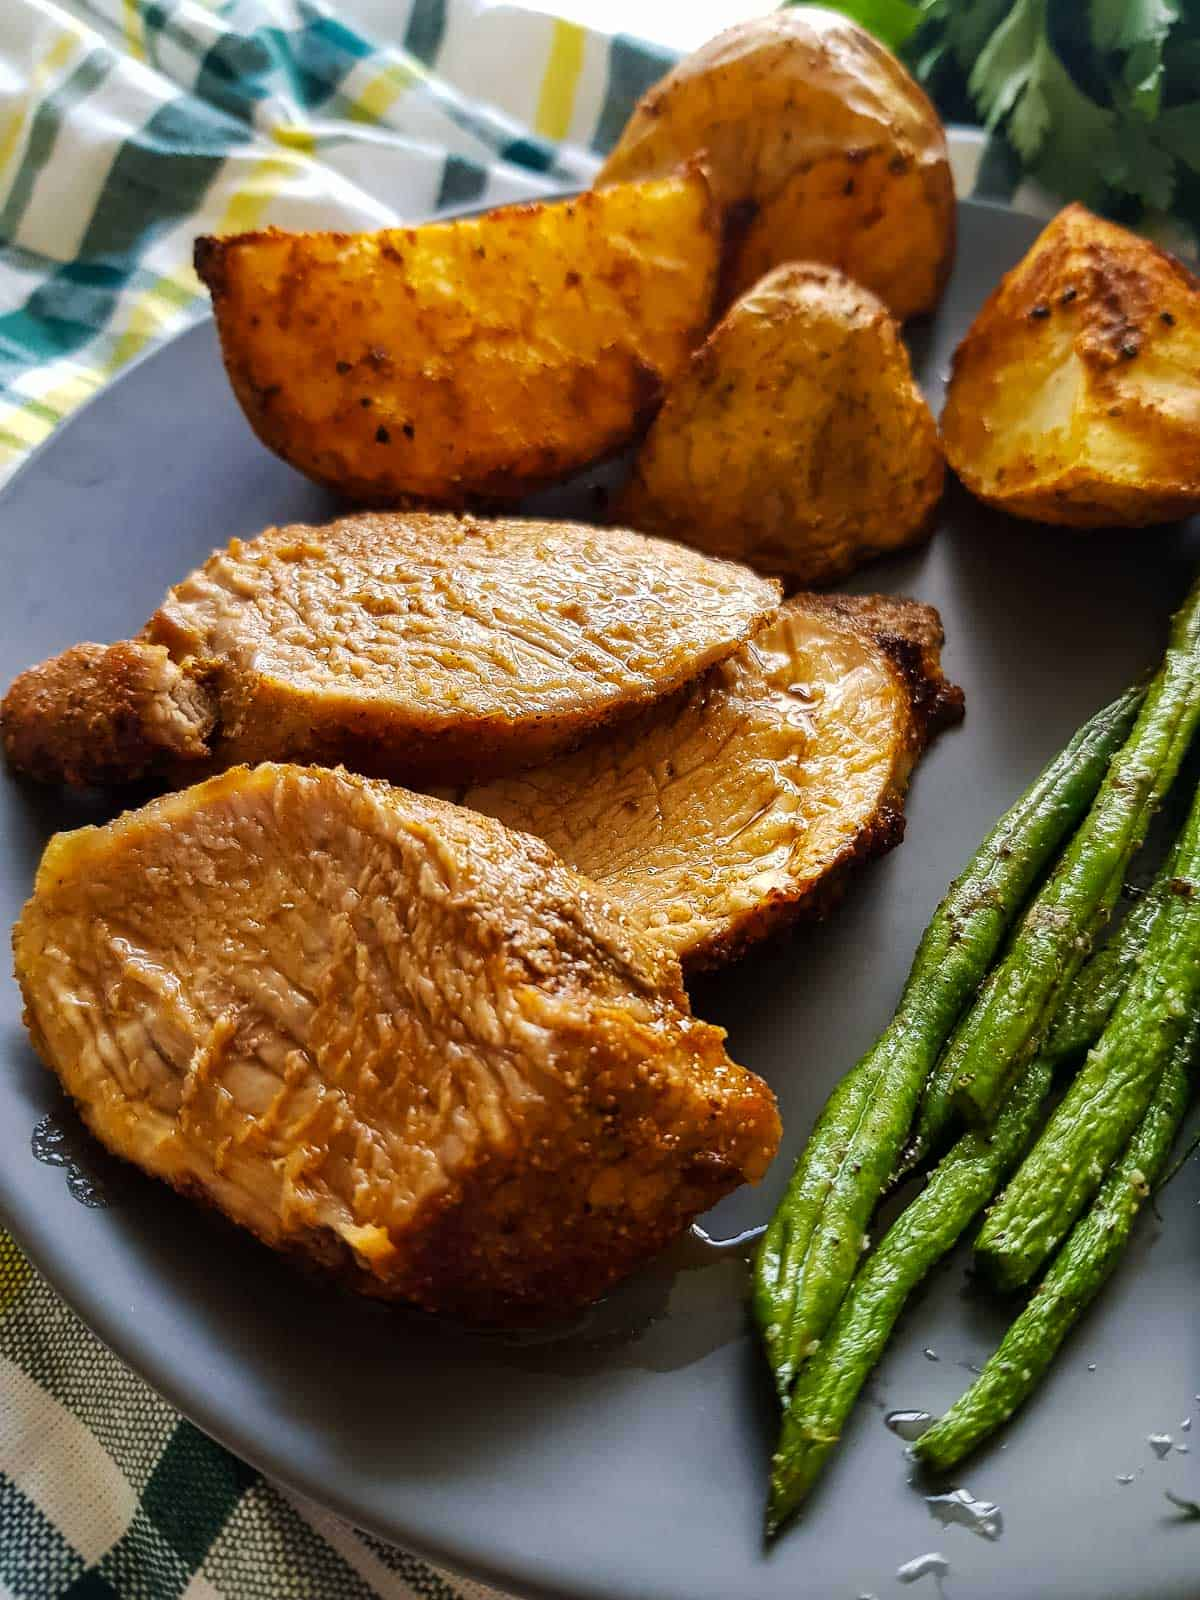 Juicy air fryer pork tenderloin.